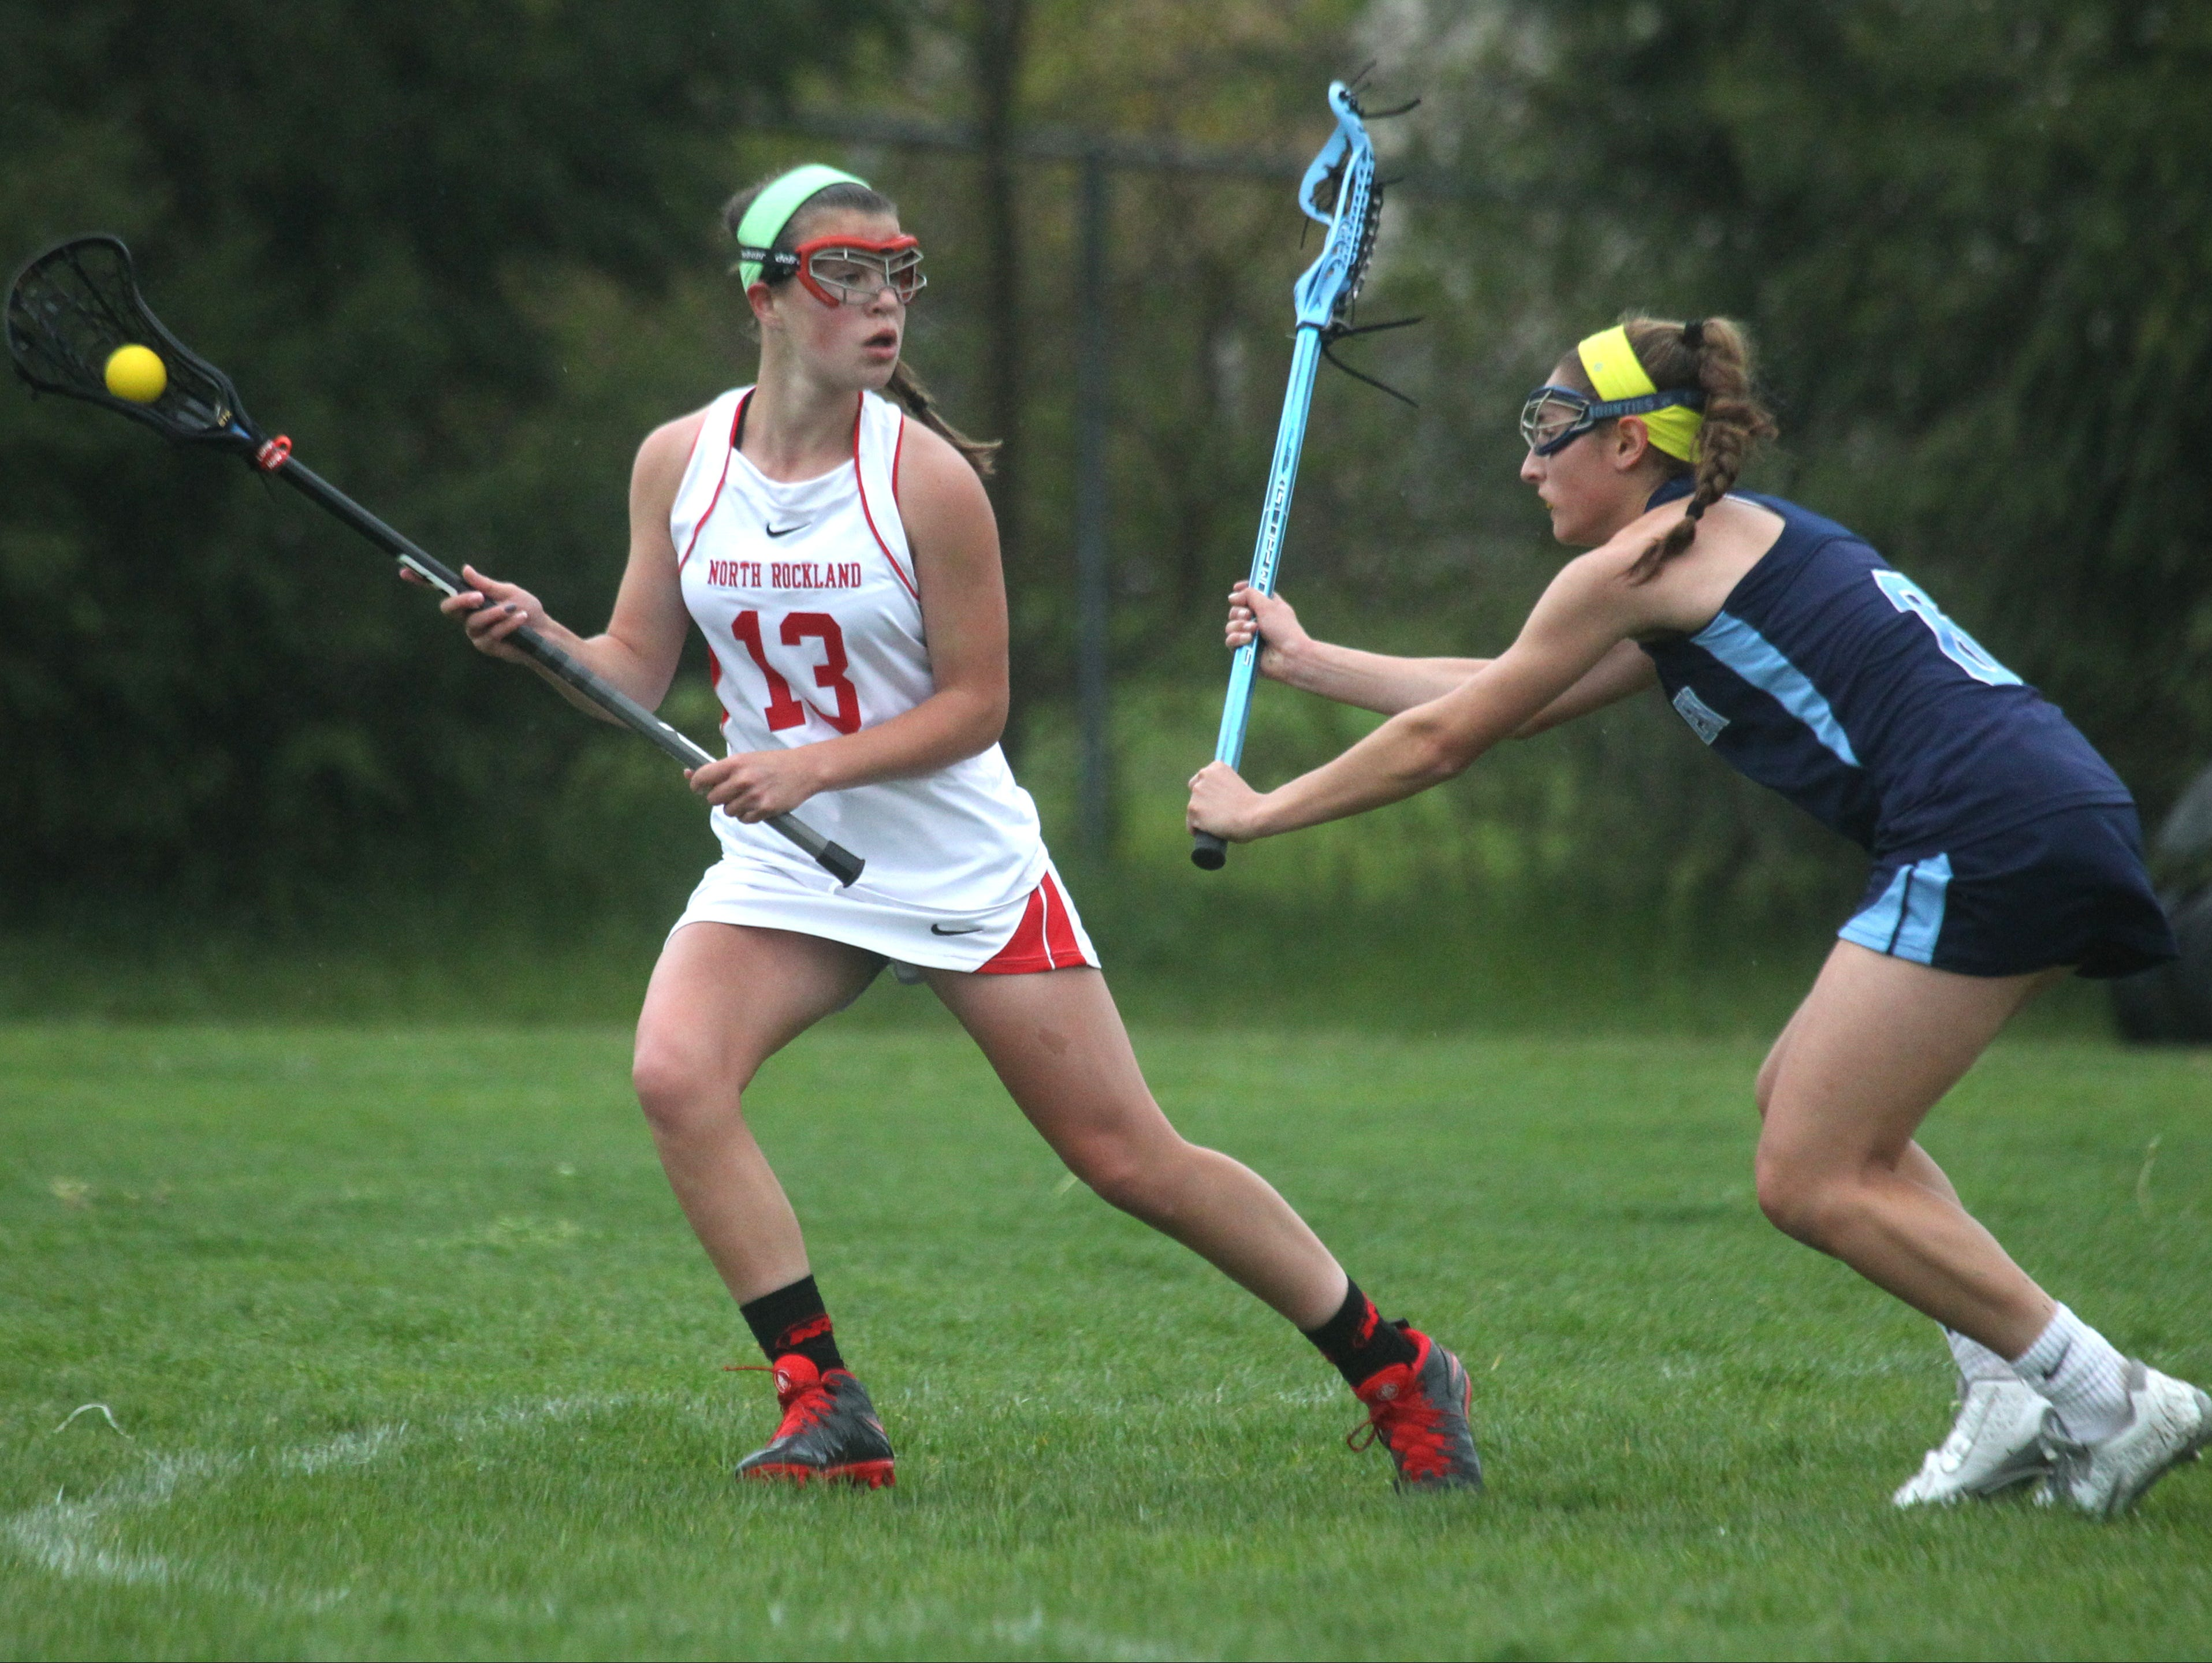 North Rockland's Kerri Gutenberger is pressured by Suffern's Hannah Newman during their game at North Rockland May 4, 2016. North Rockland won 8-7.